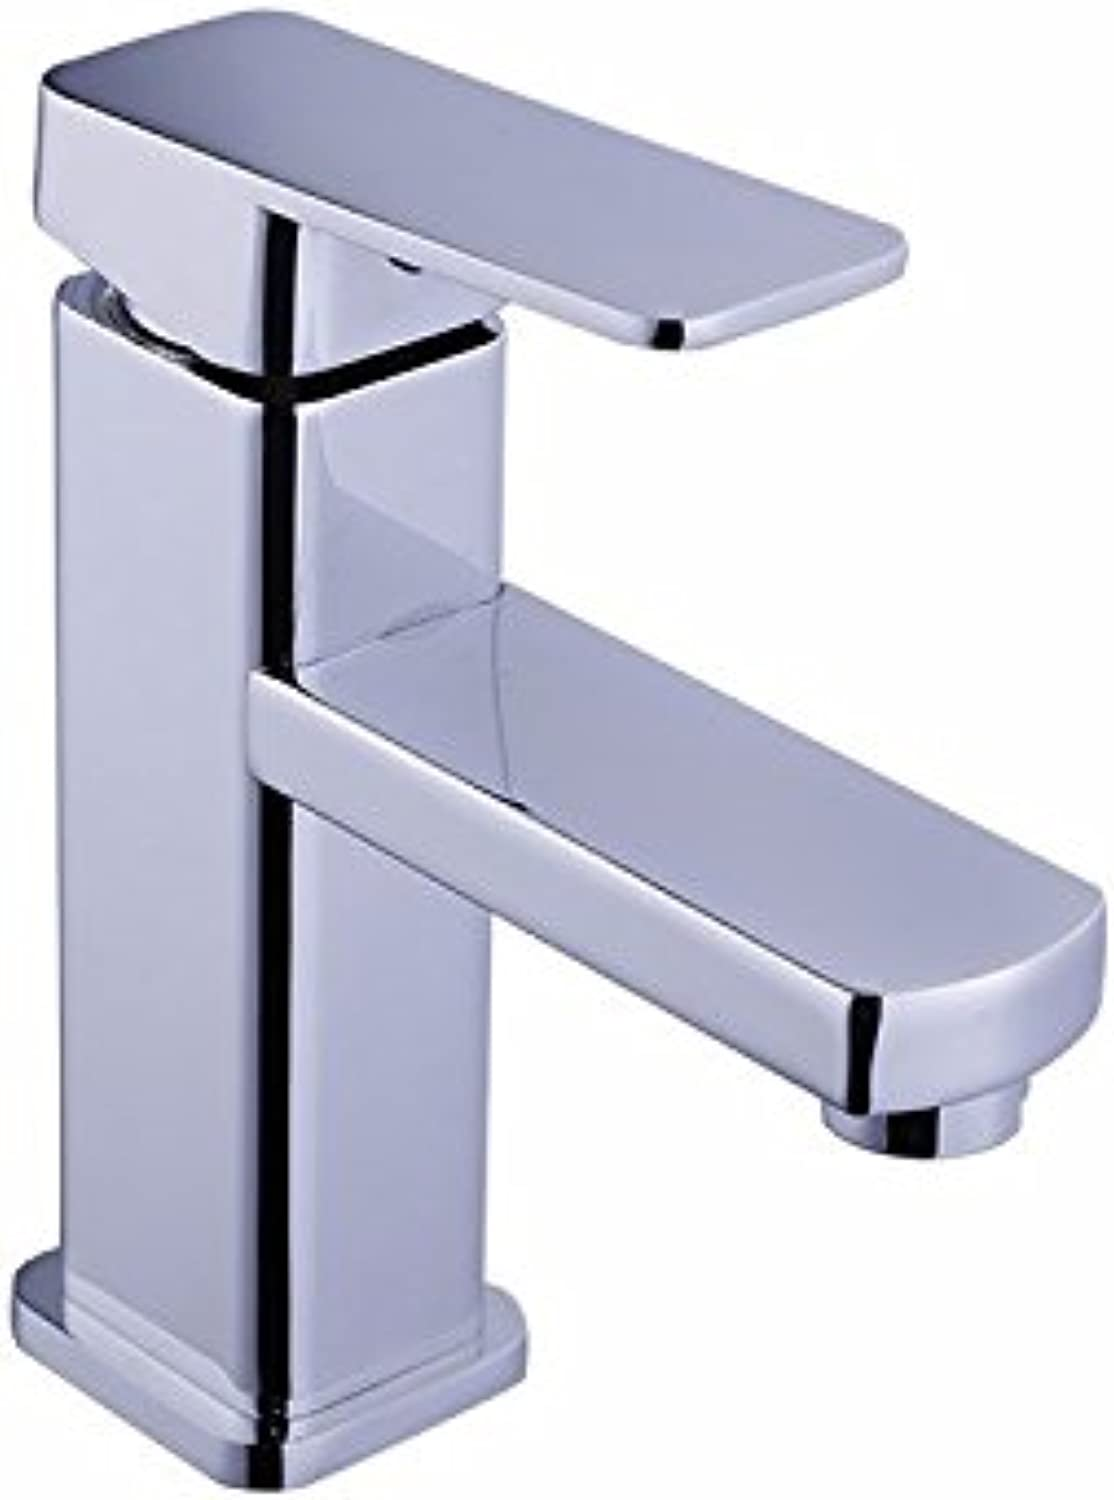 MDRW-Single hole basin faucet, single square faucet, cold and hot water basin faucet, basin faucet on Taiwan